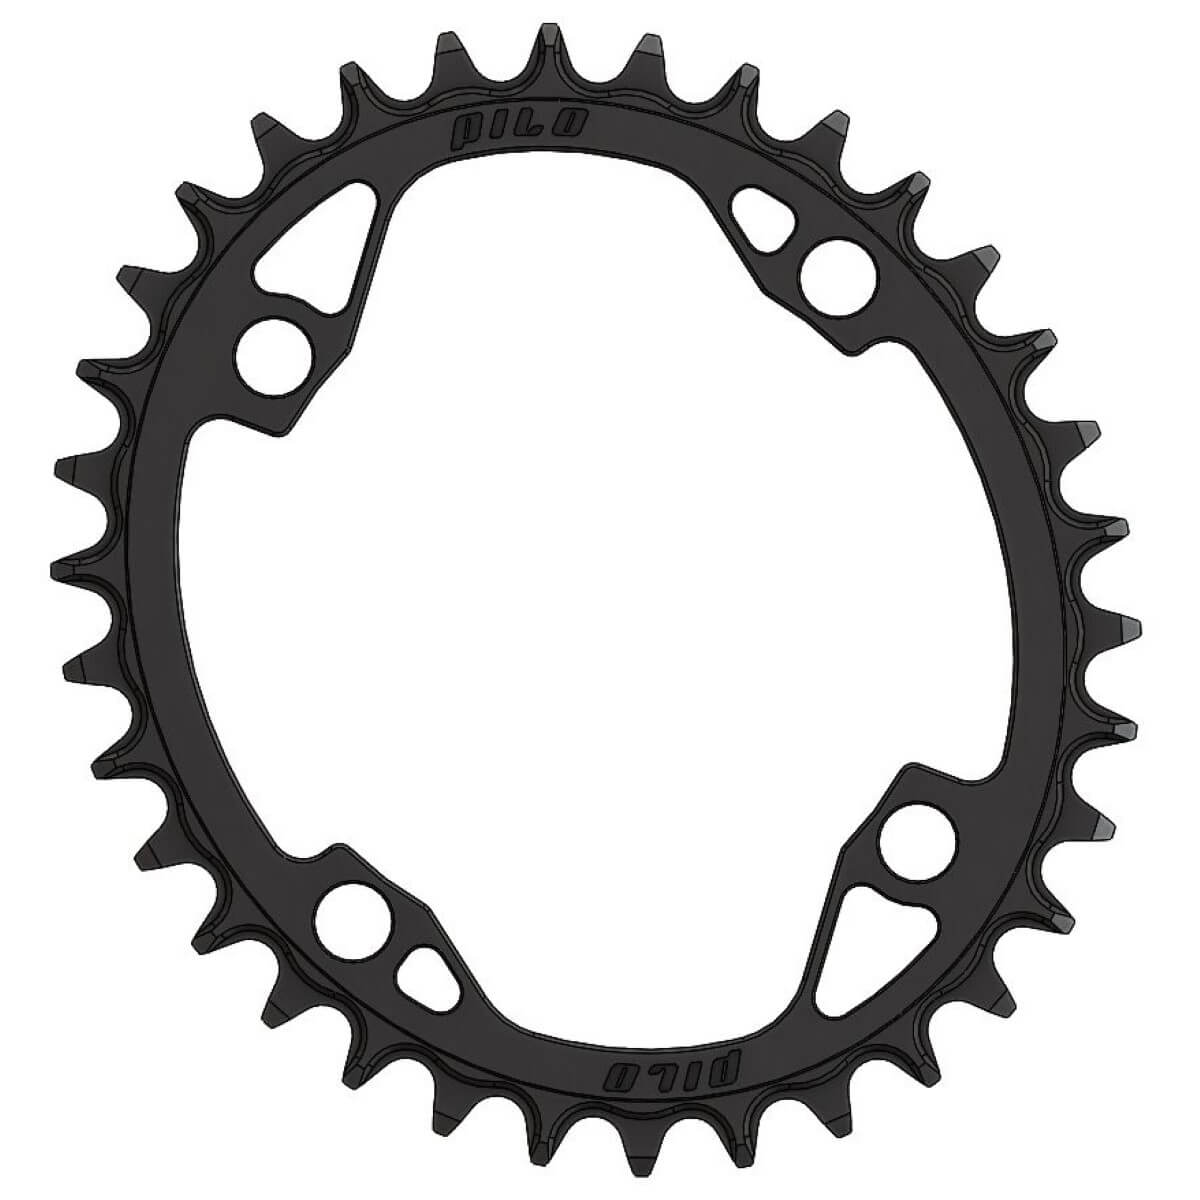 Pilo C64 Chainring Elliptic Narrow Wide 34T Shimano 104 BCD